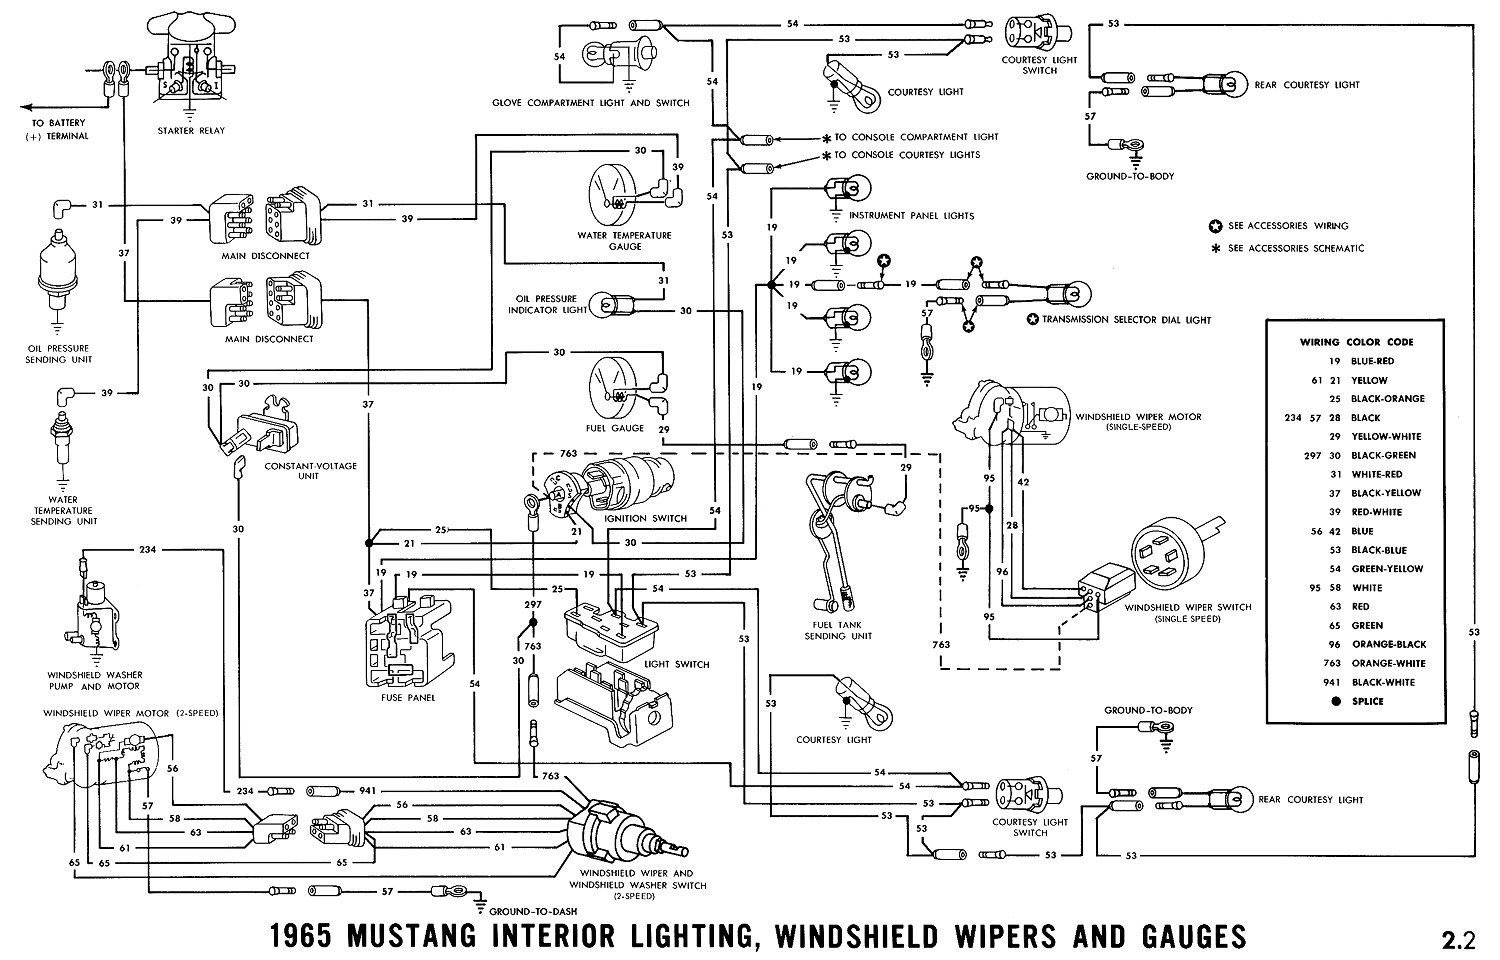 1967 mustang engine diagram schematics wiring diagrams u2022 rh seniorlivinguniversity co